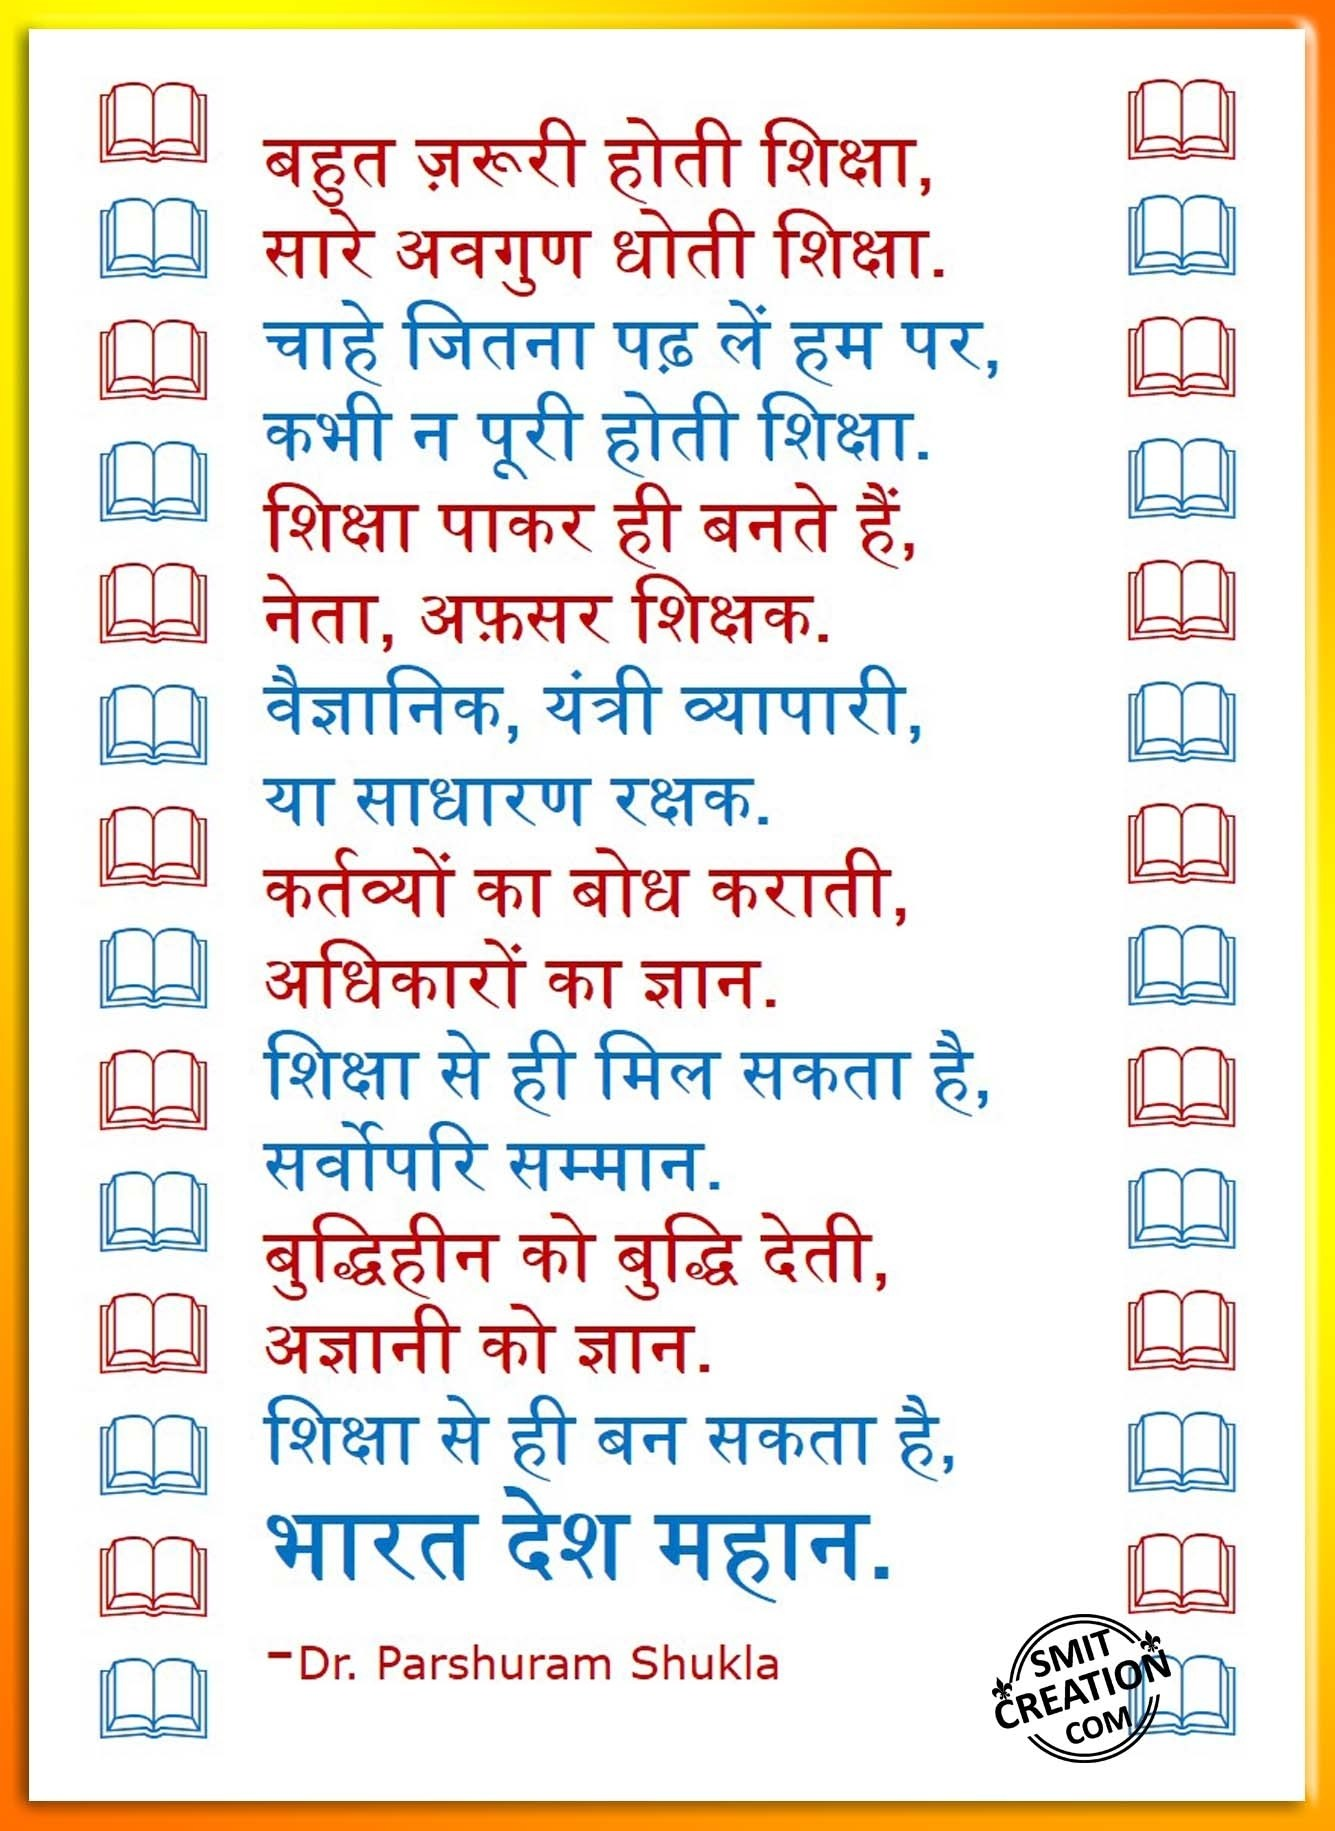 Hindi Poem On Literacy SmitCreation Com